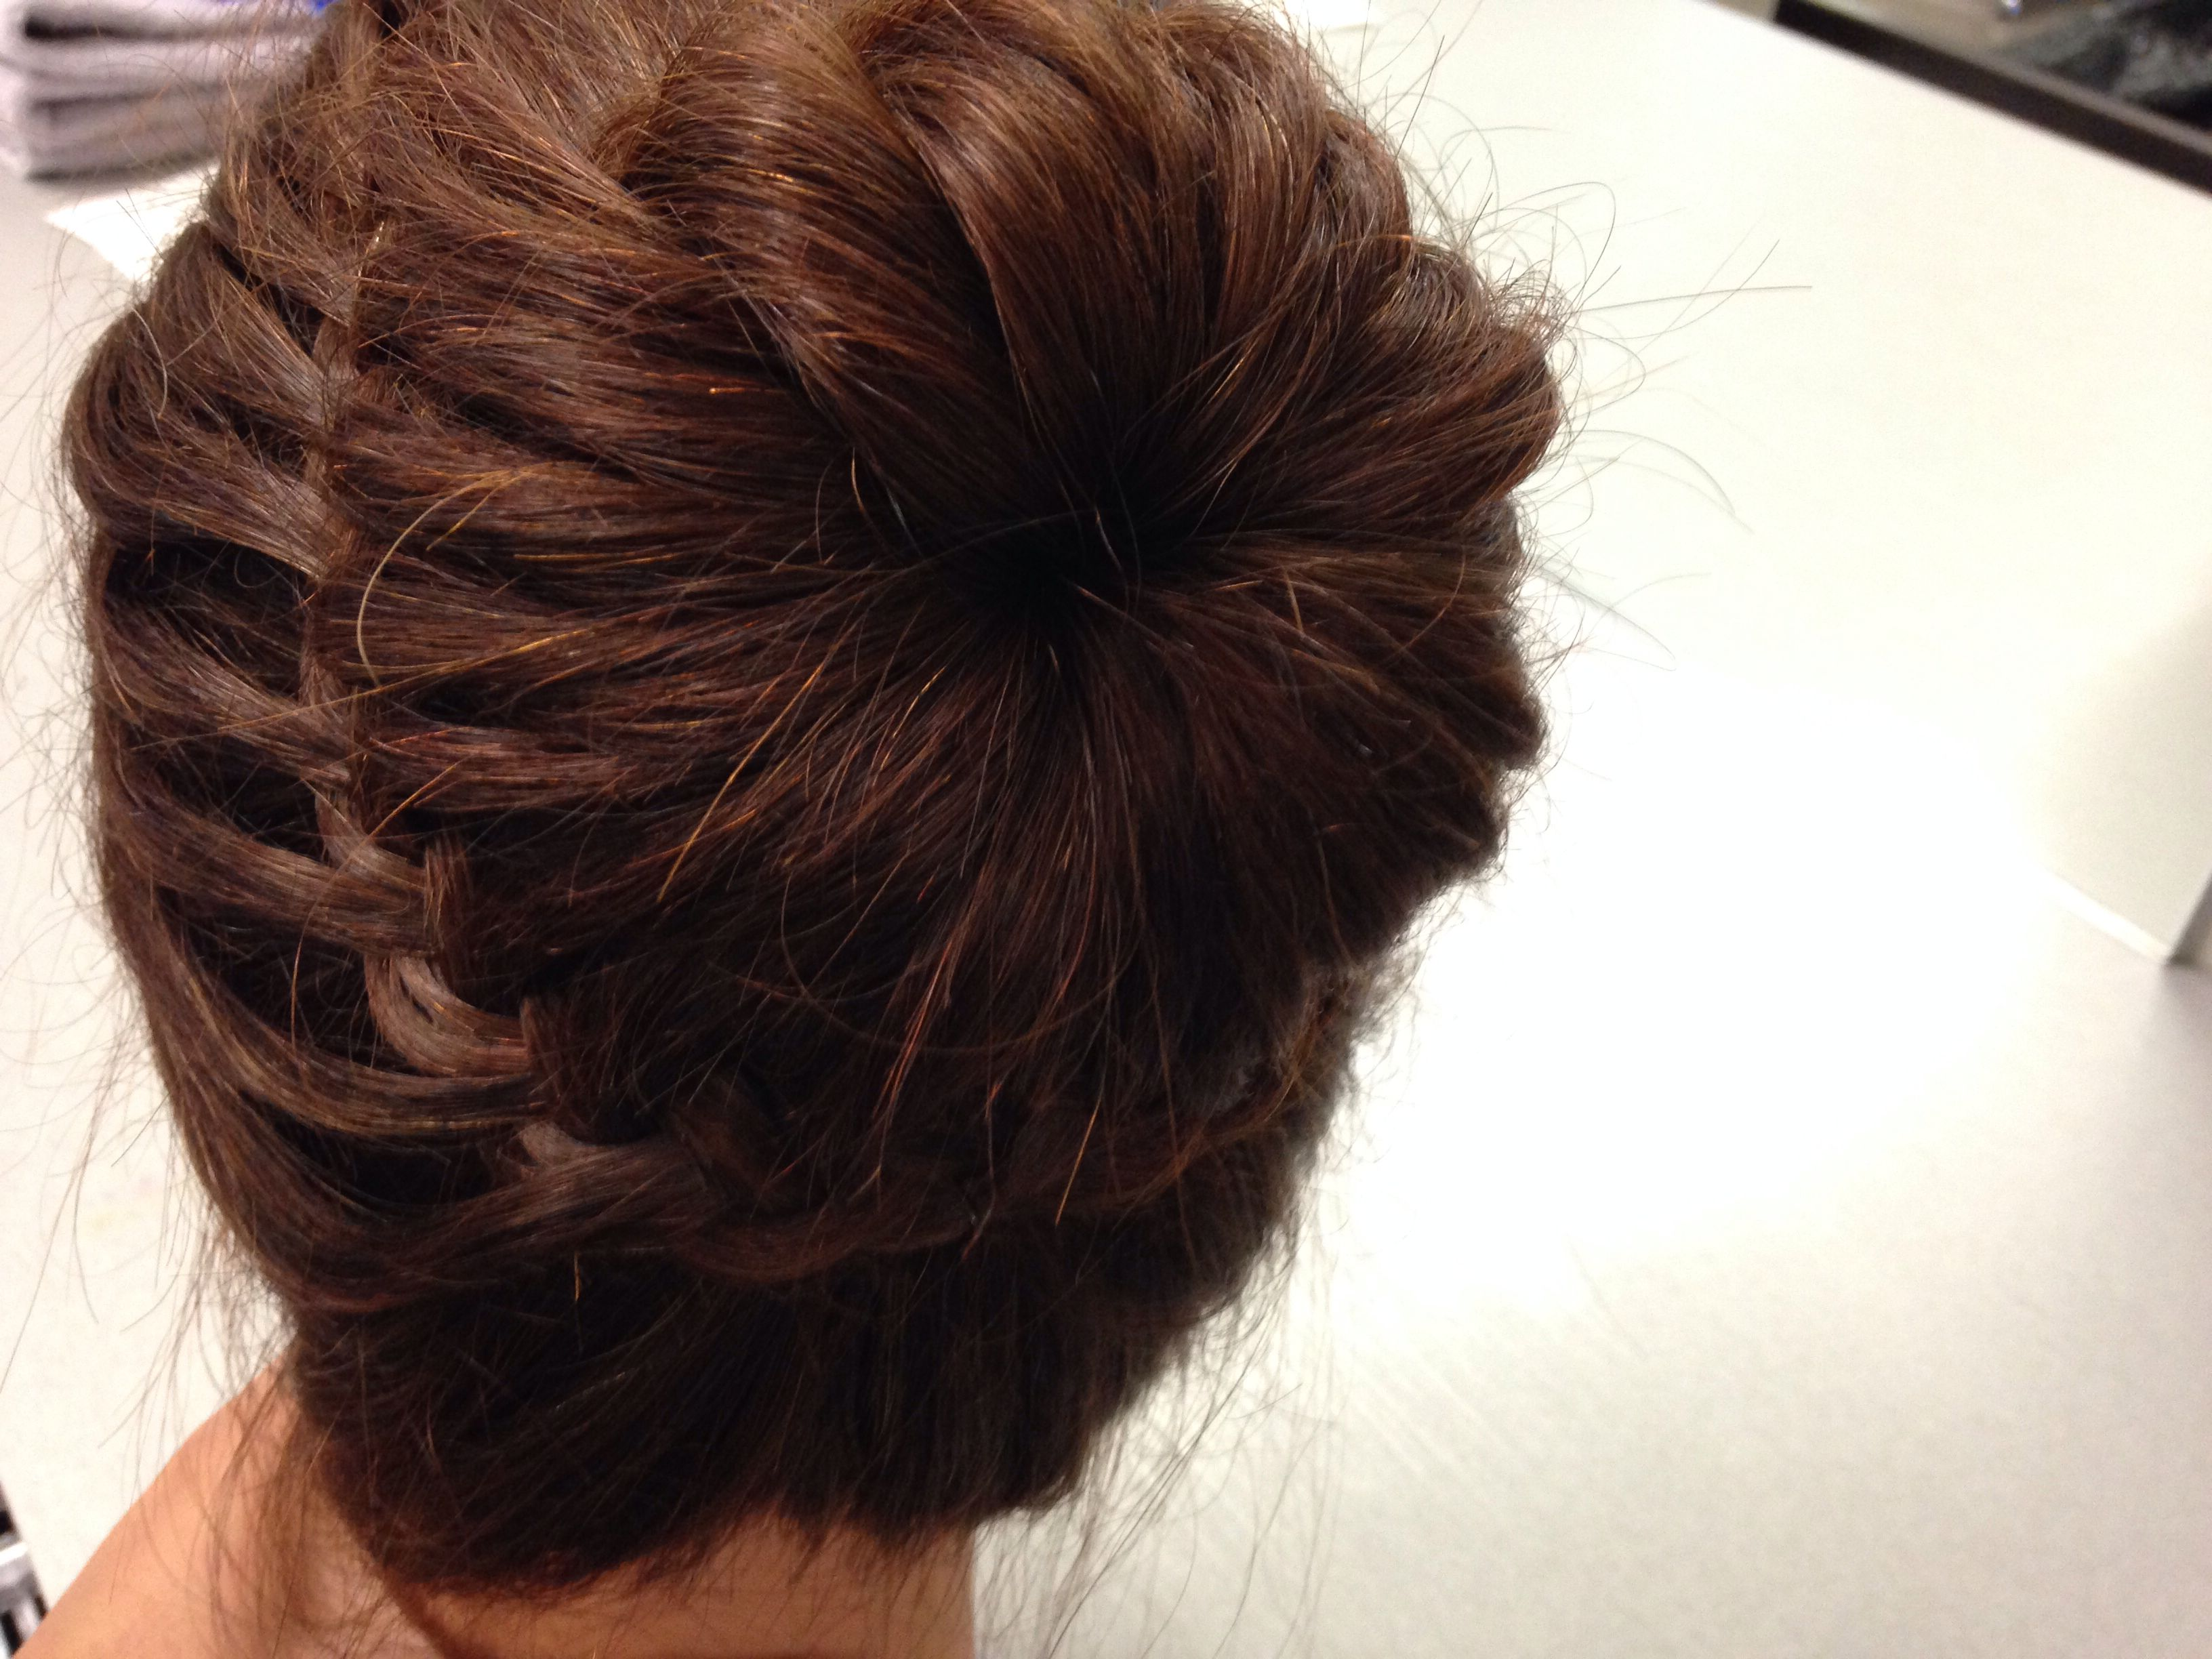 Pin By Manelad On Hairstyle Pinterest Updo